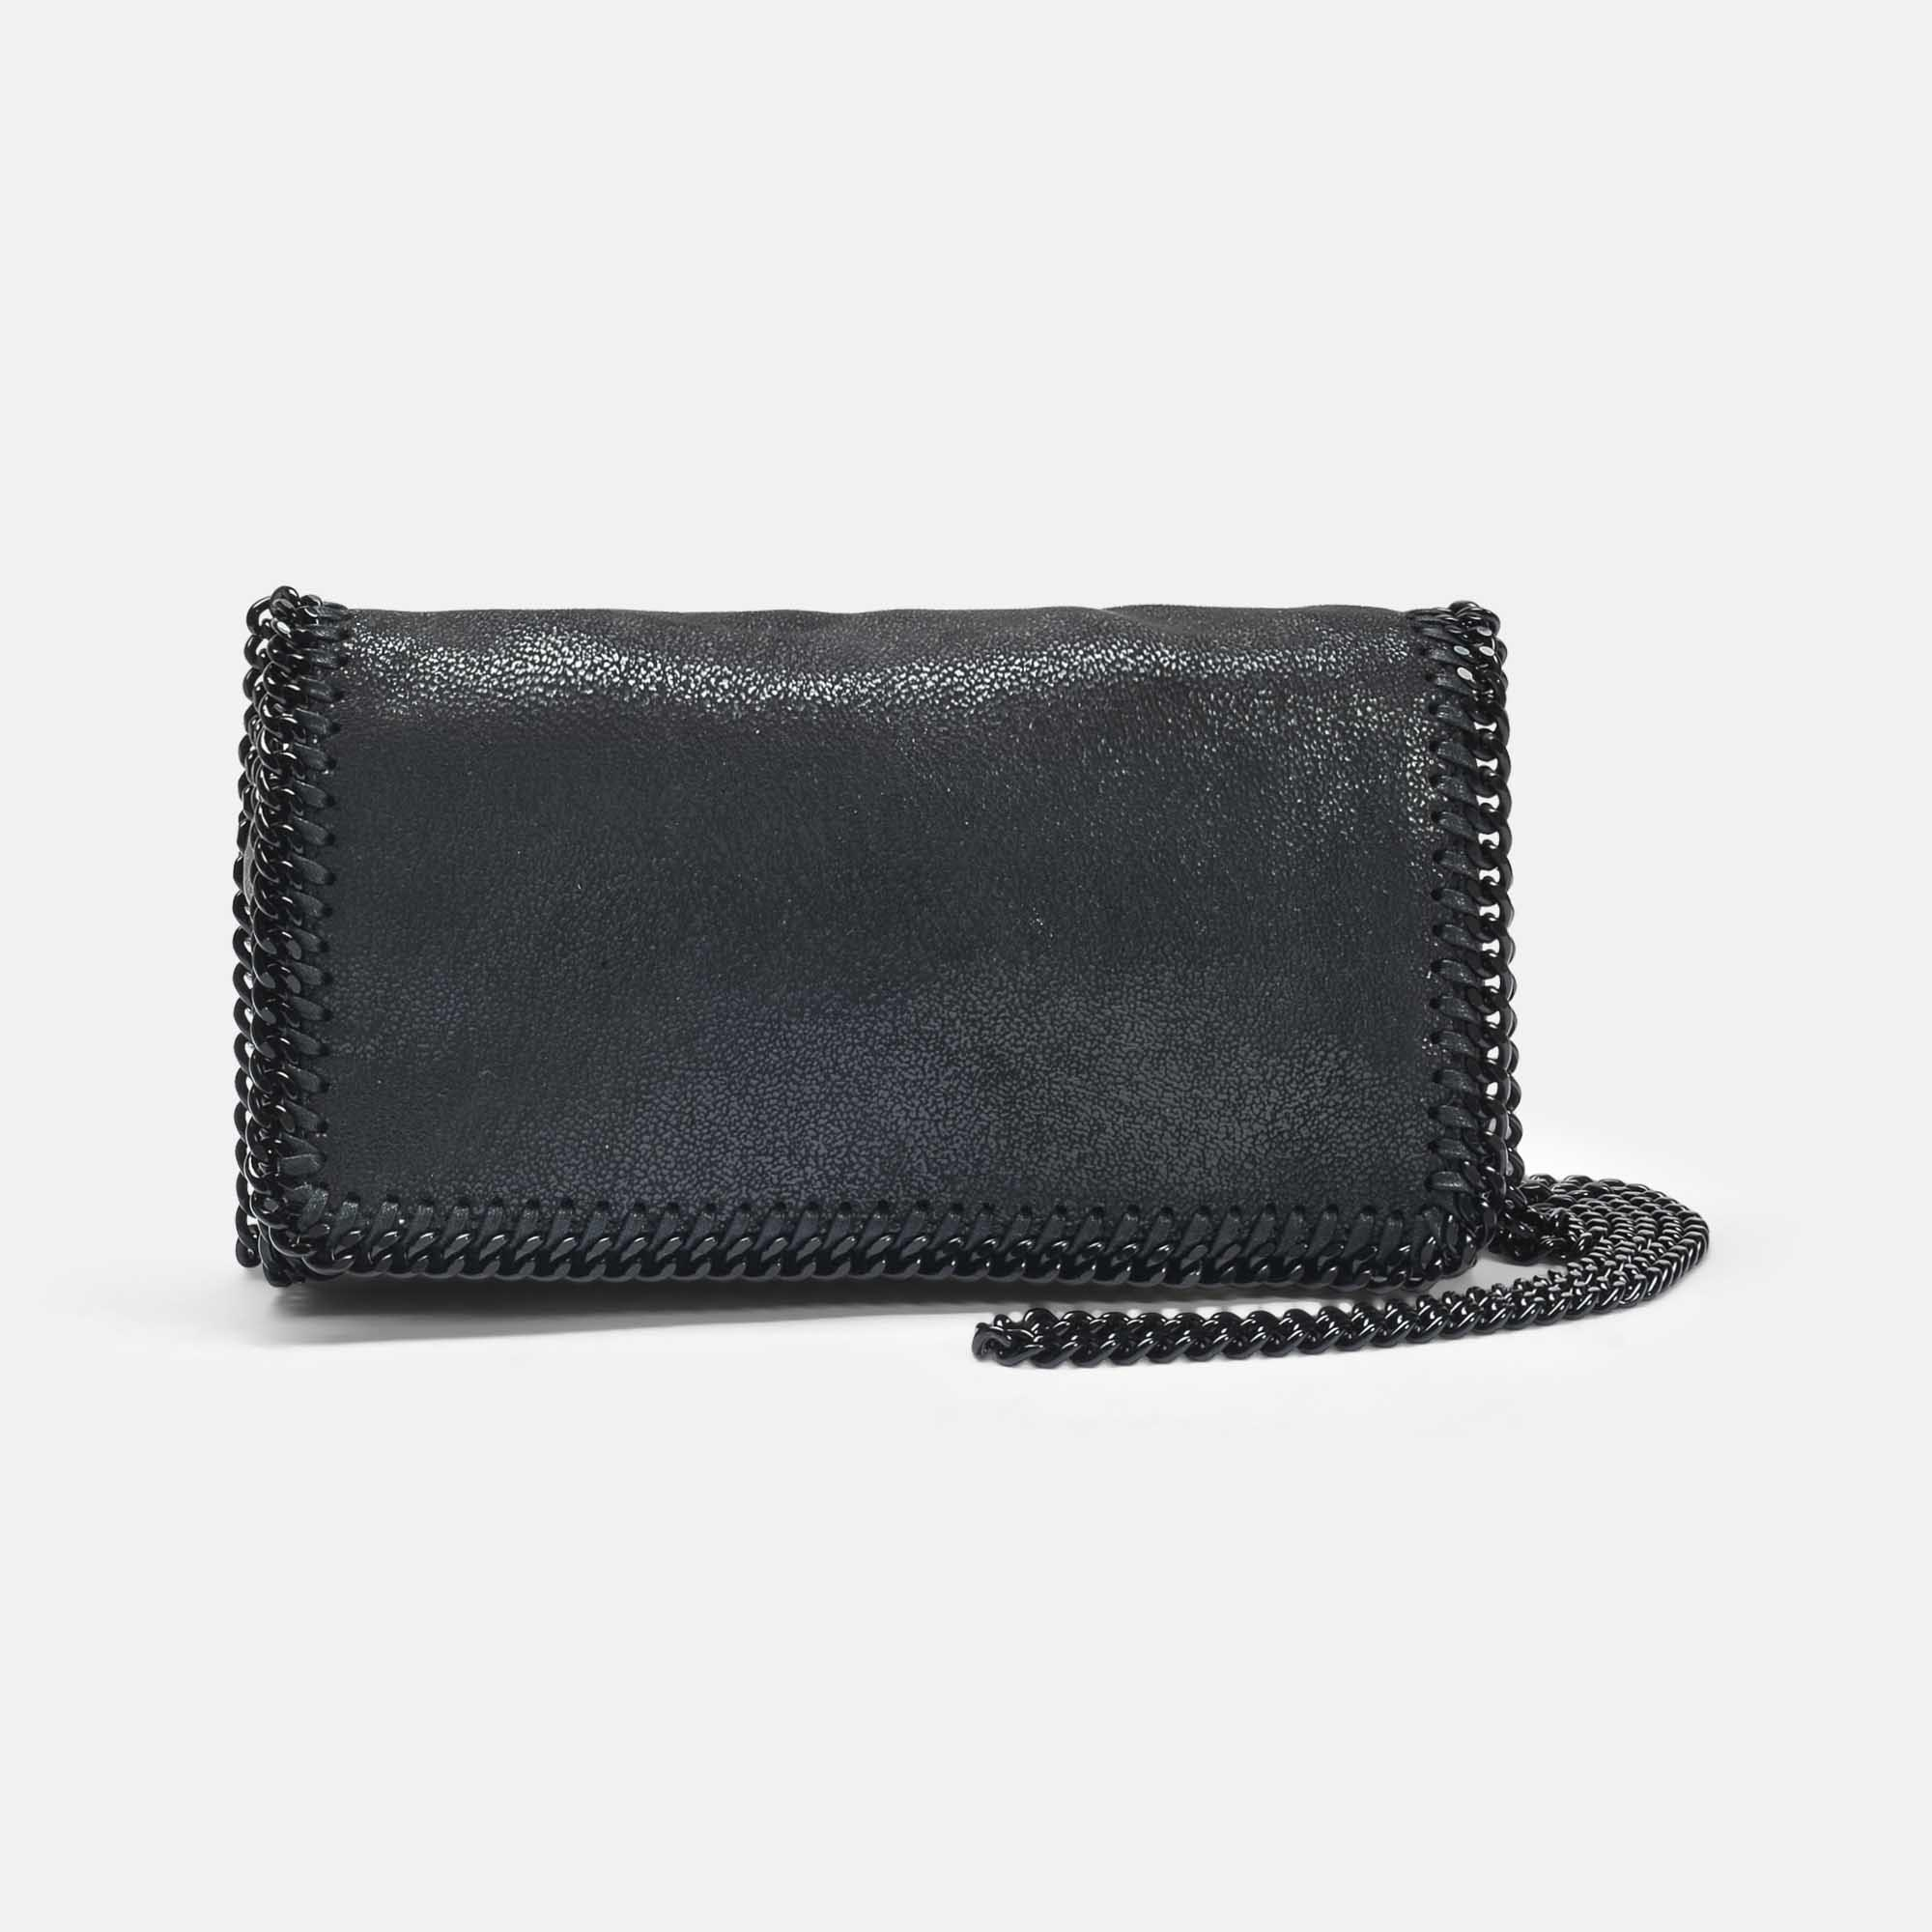 Cheap Great Deals Clearance Visit New Shaggy Deer Black Chain Falabella Clutch Bag in Black Eco Leather Stella McCartney Outlet Sale 78egXS3Sc